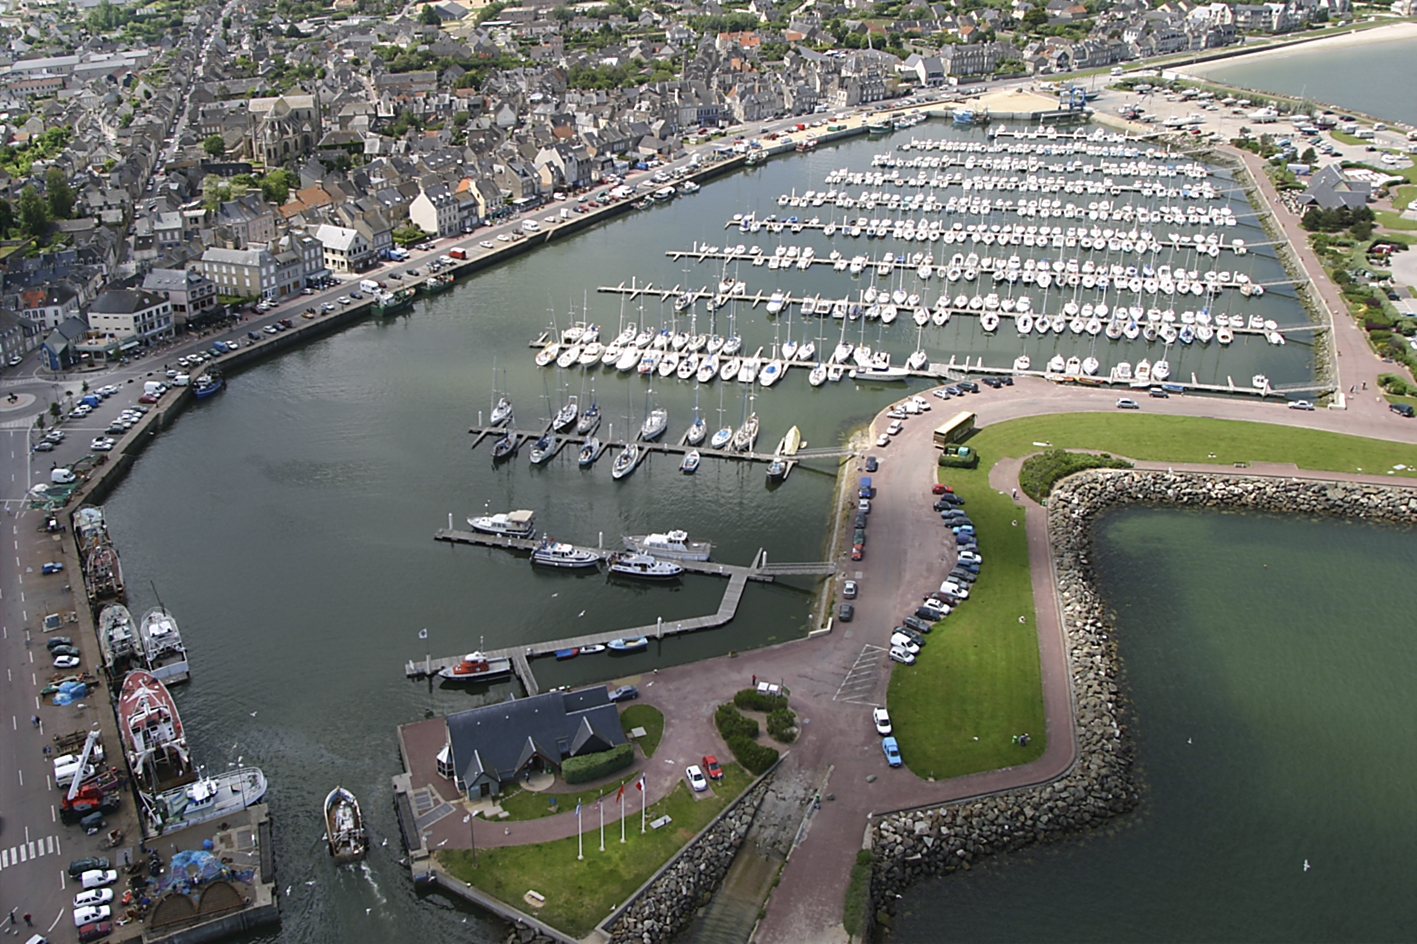 Saint vaast la hougue restaurant saint vaast la hougue - Office de tourisme de saint vaast la hougue ...